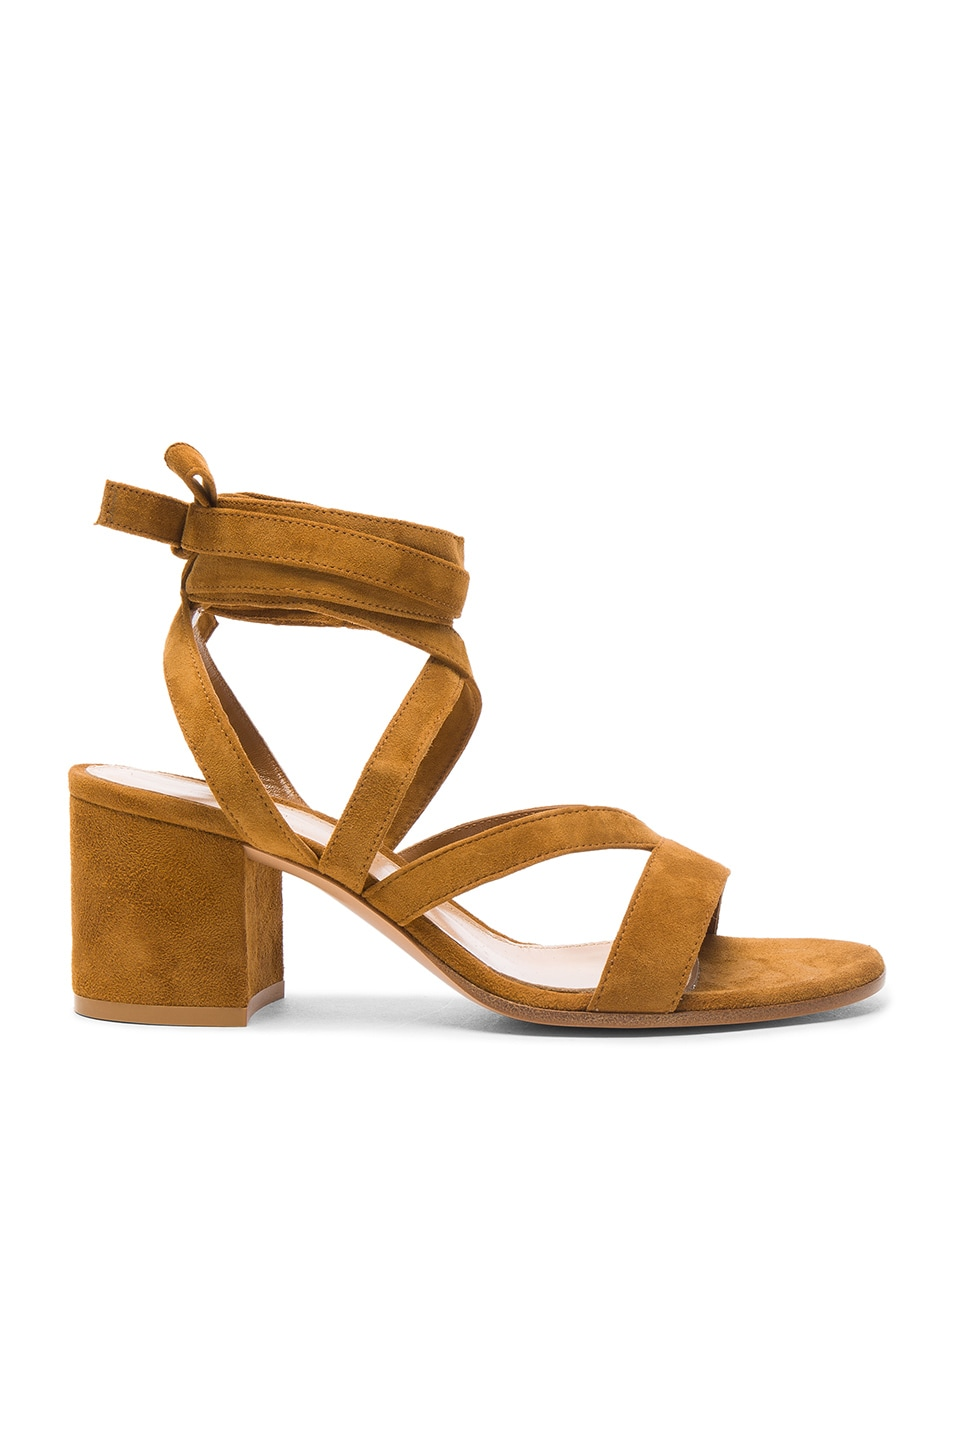 Image 1 of Gianvito Rossi Suede Janis Low Sandals in Almond